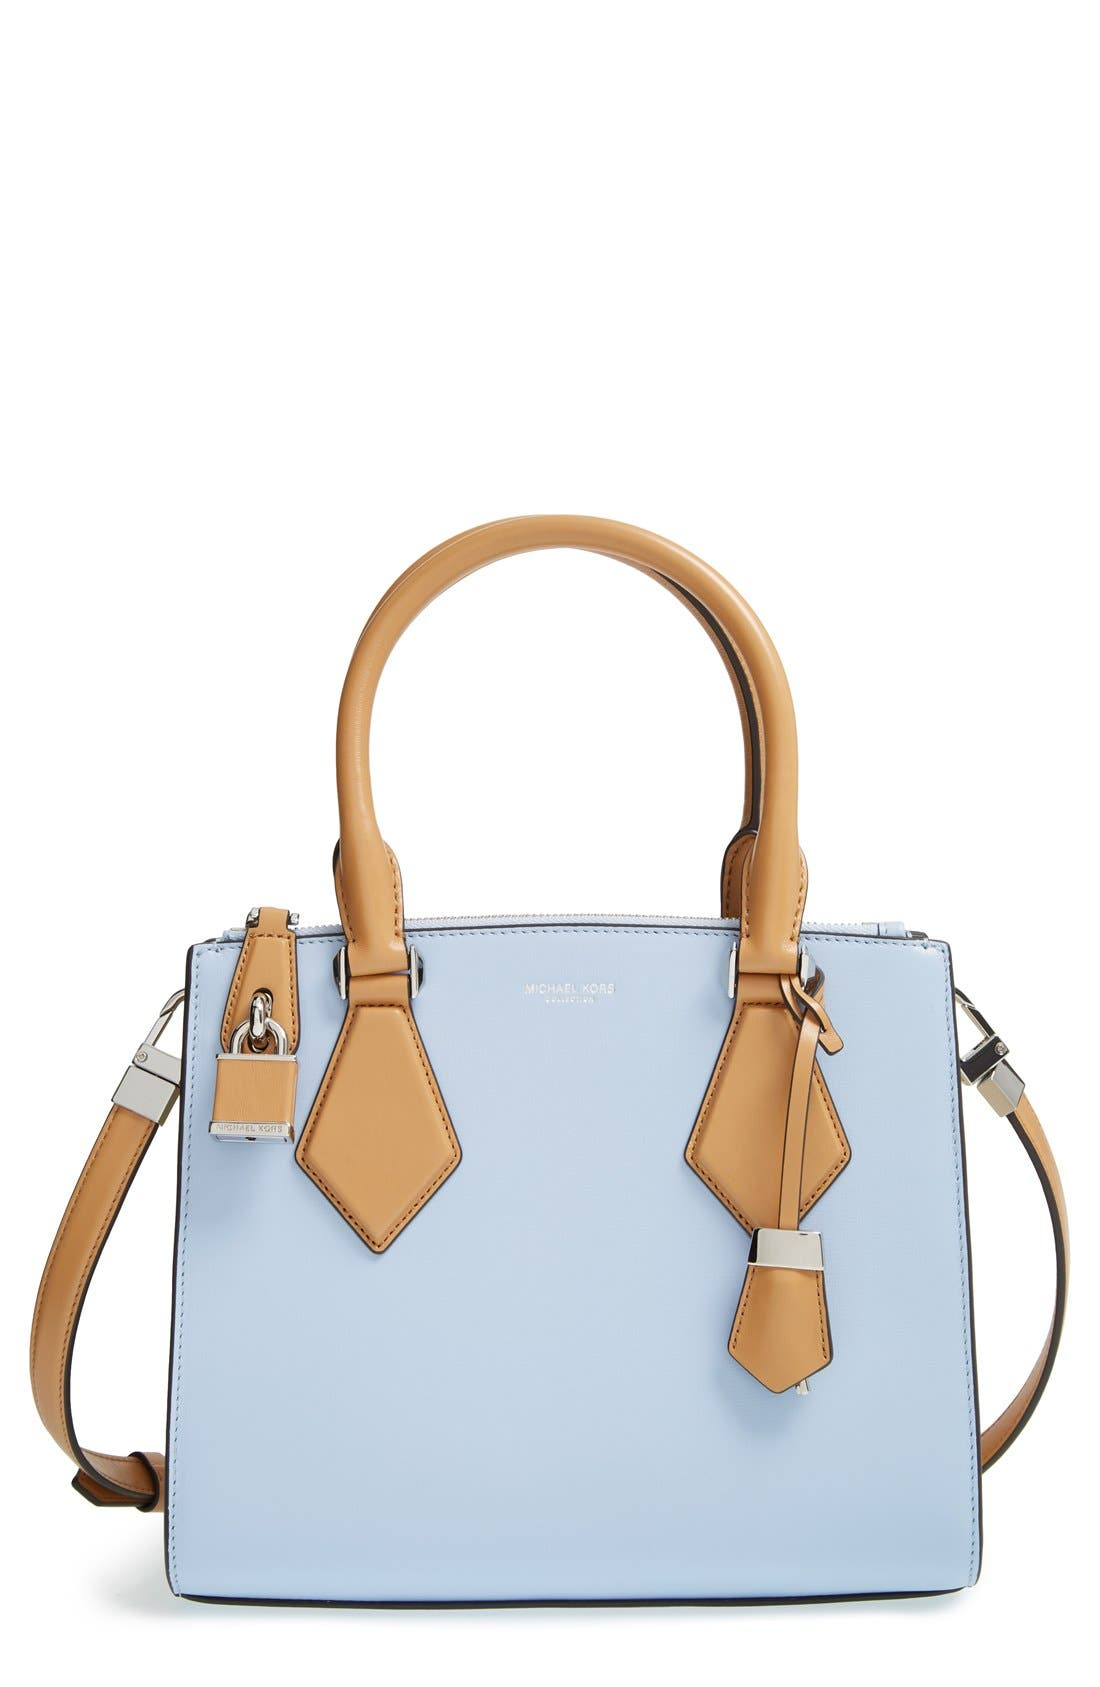 Main Image - Michael Kors 'Small Casey' Leather Satchel